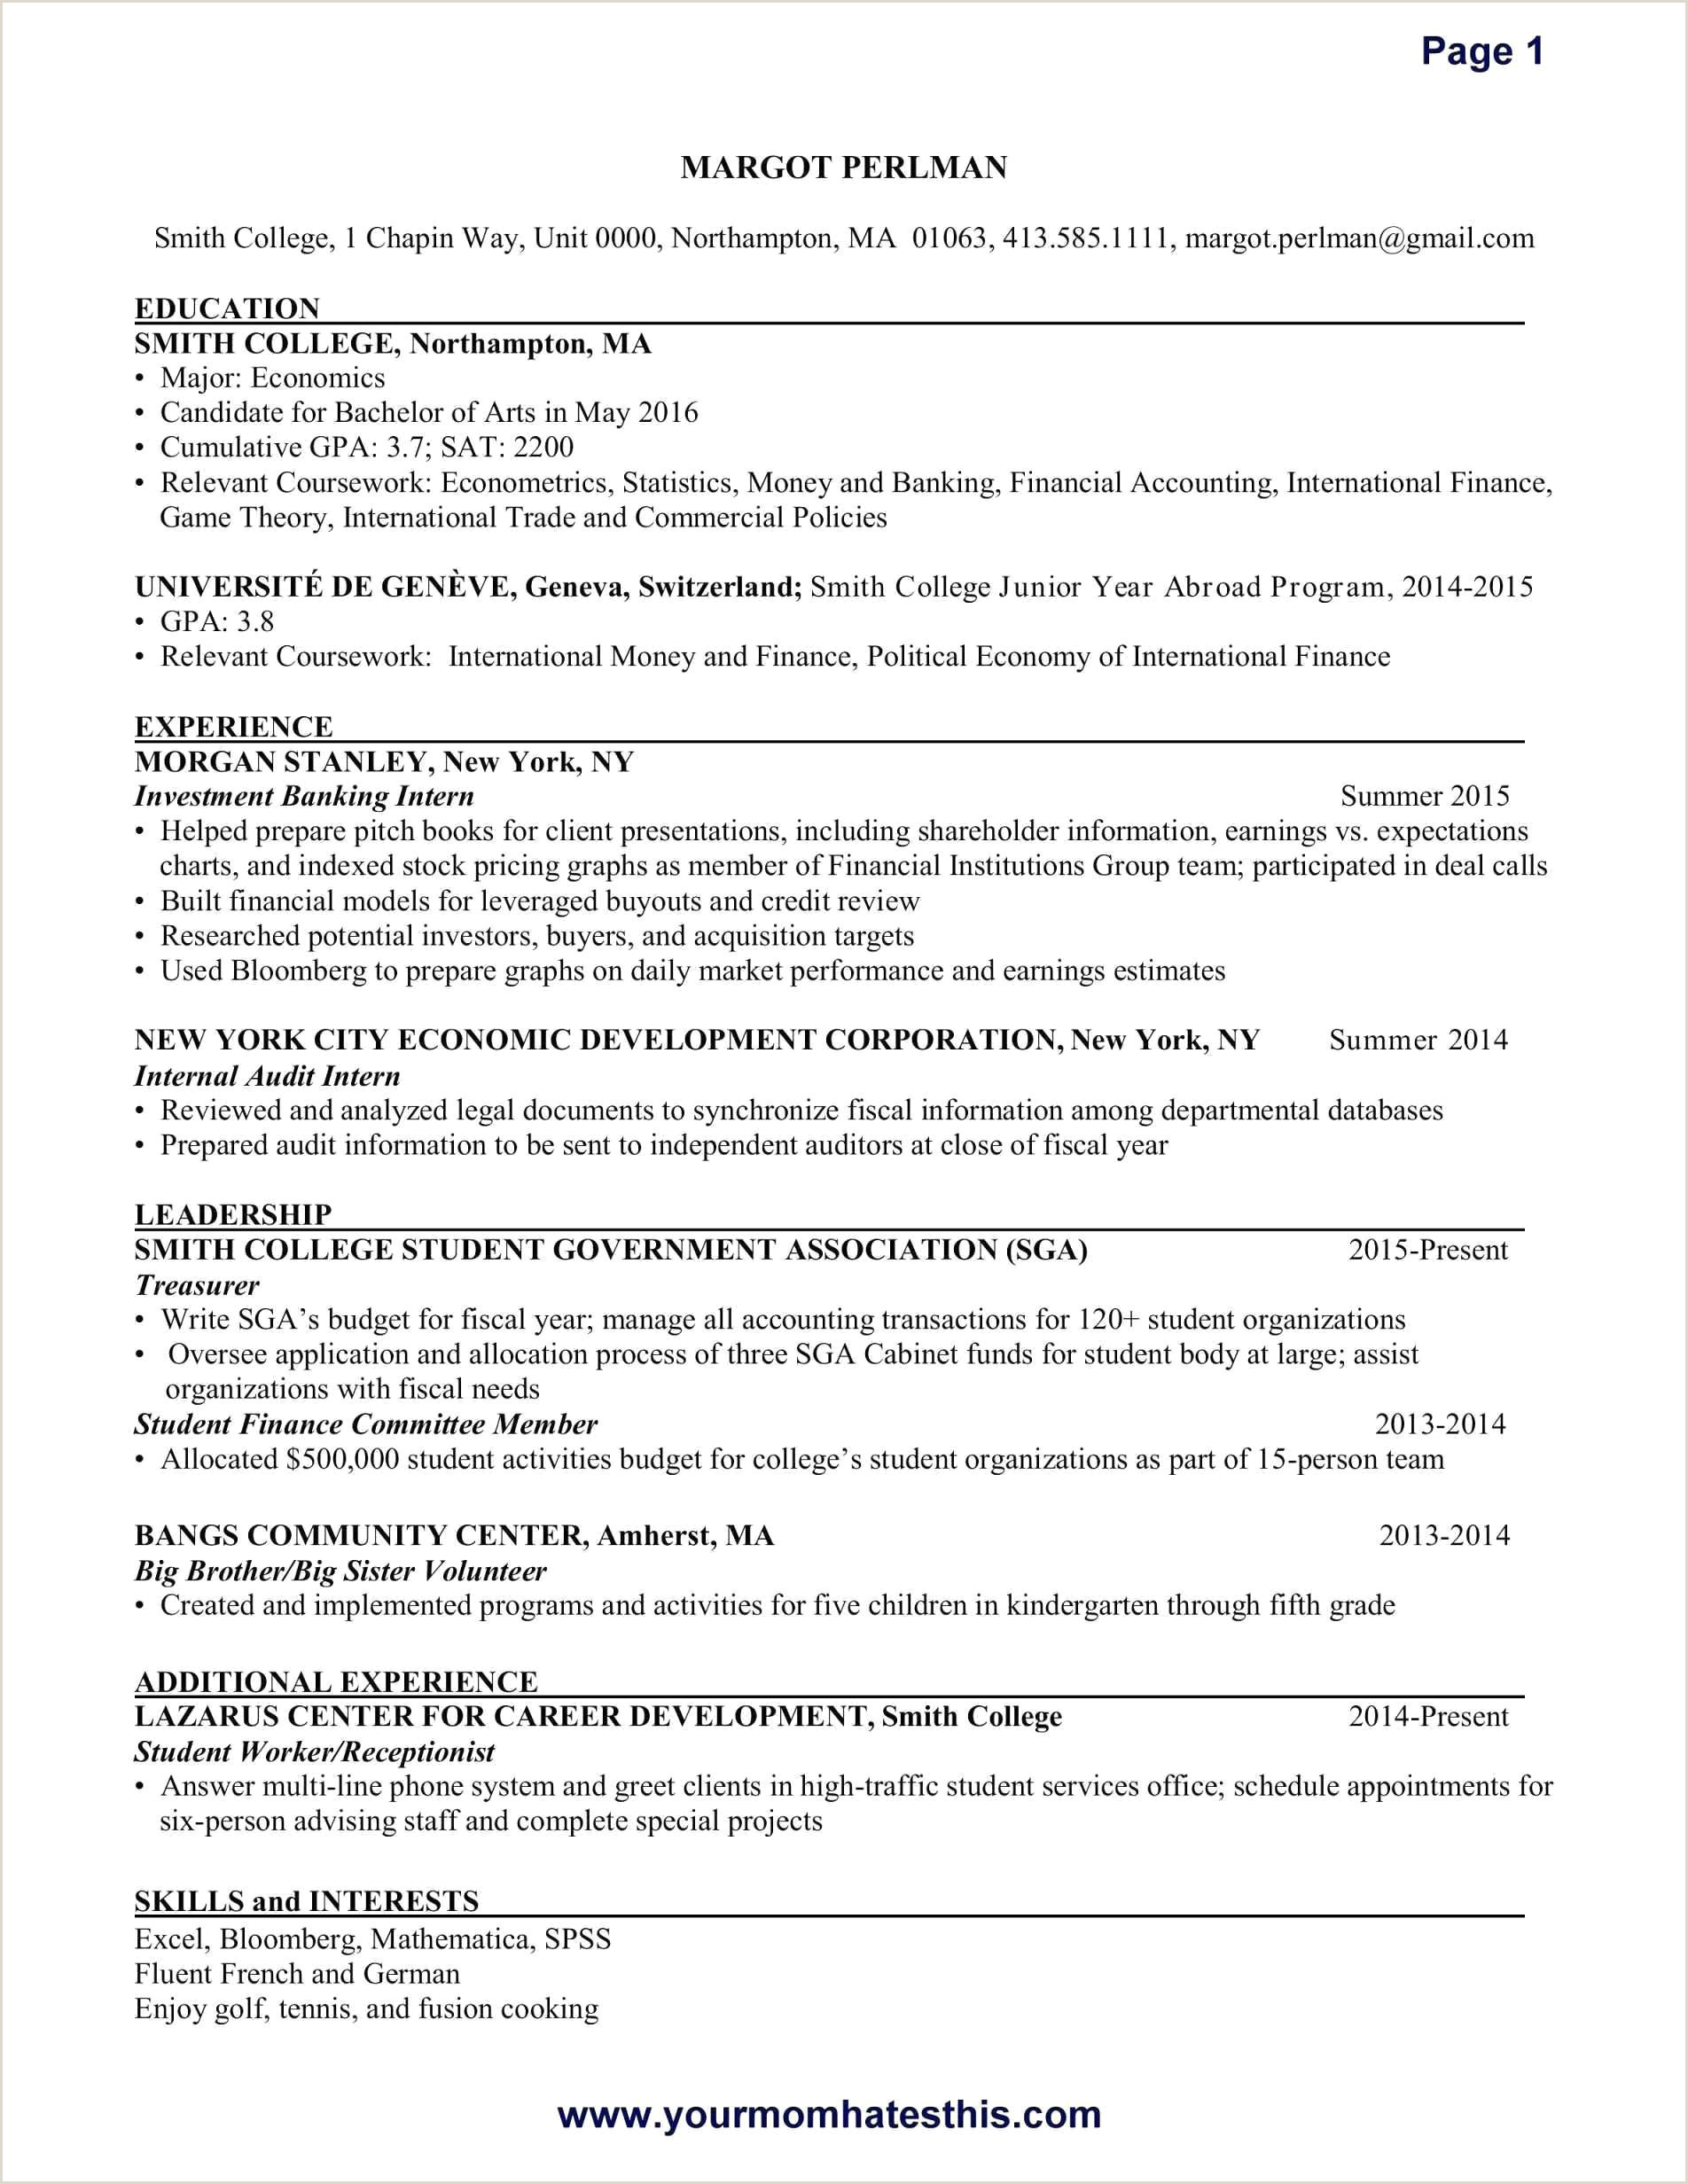 Cv format for Accountant Job Simple Modele De Cv Finance Iulitte